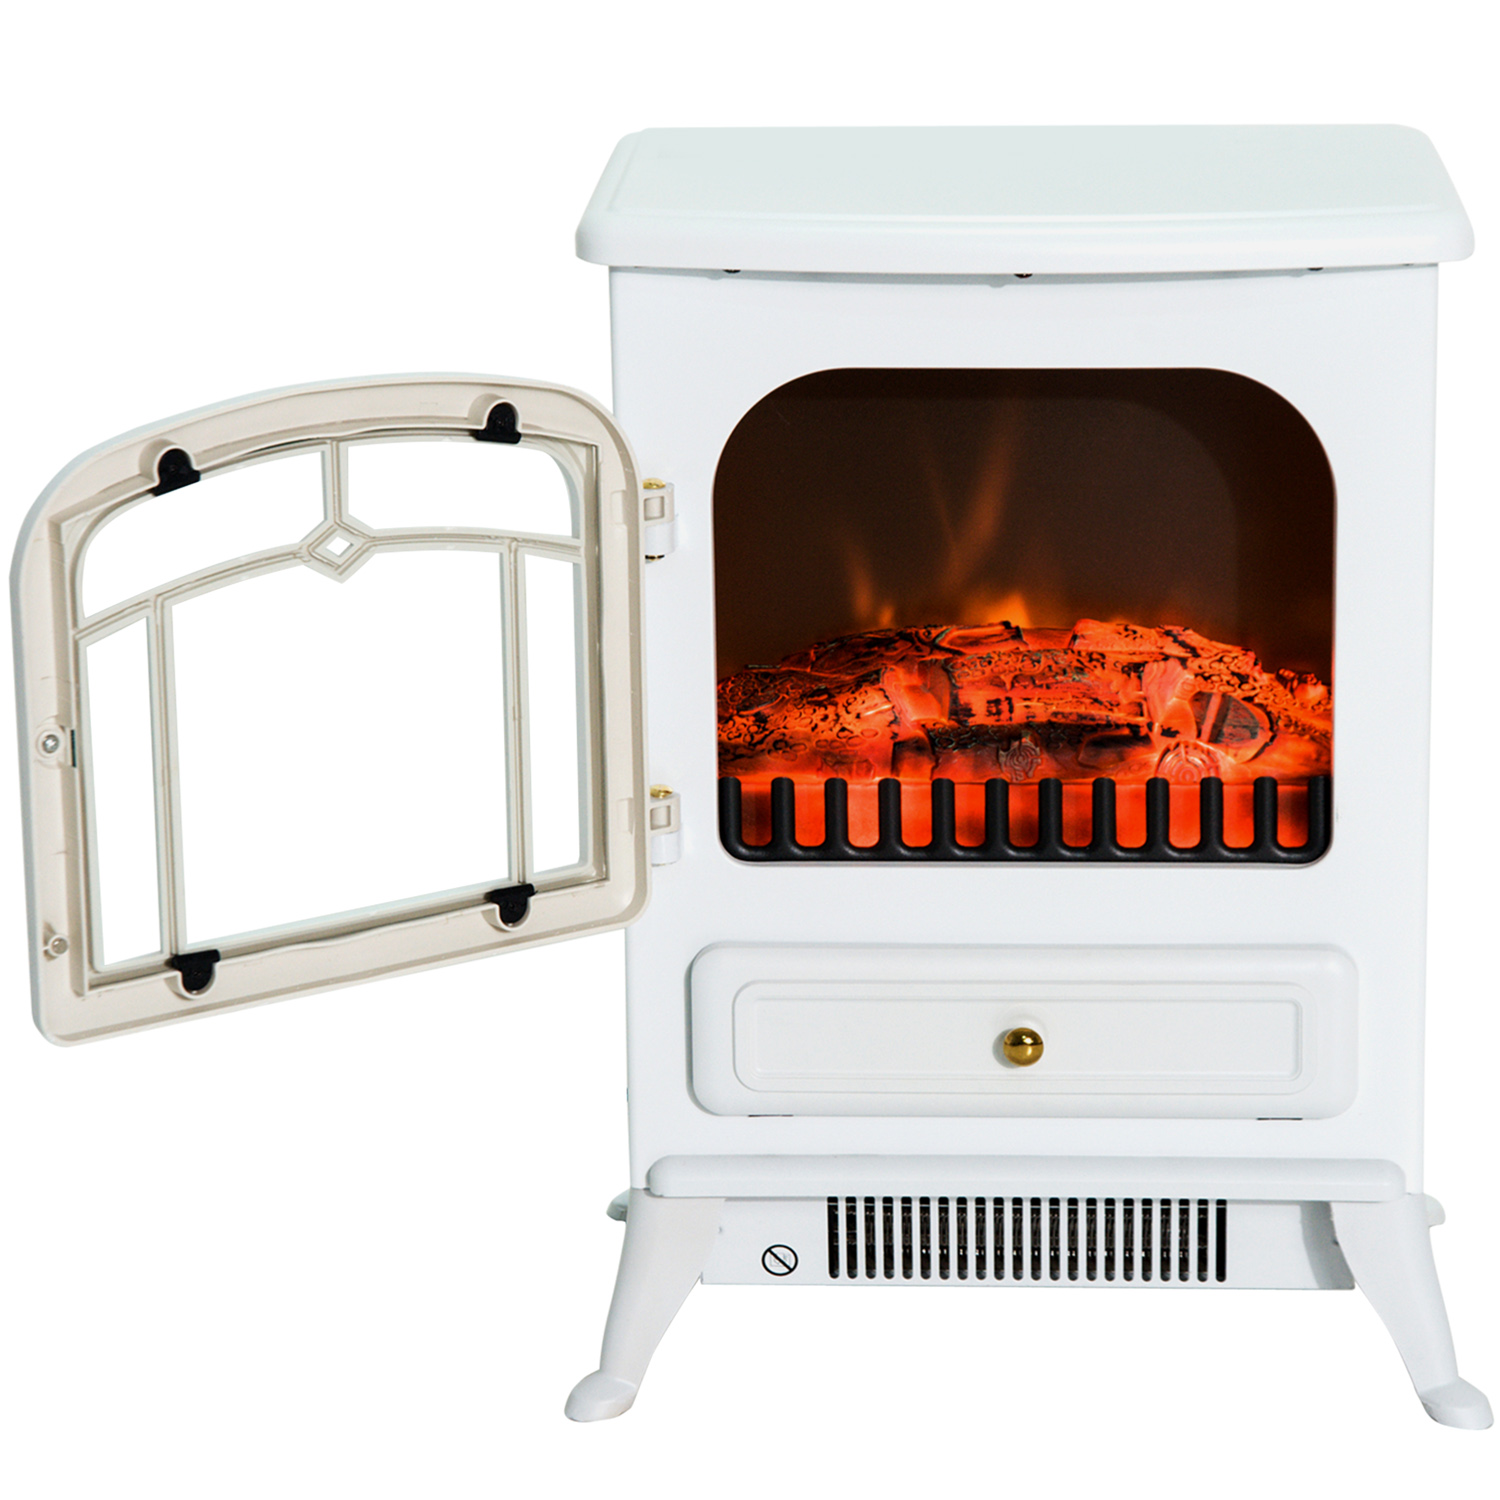 HOMCOM-750-1500W-Portable-Electric-Fireplace-Stove-Heater-Adjustable-LED-Flames thumbnail 22